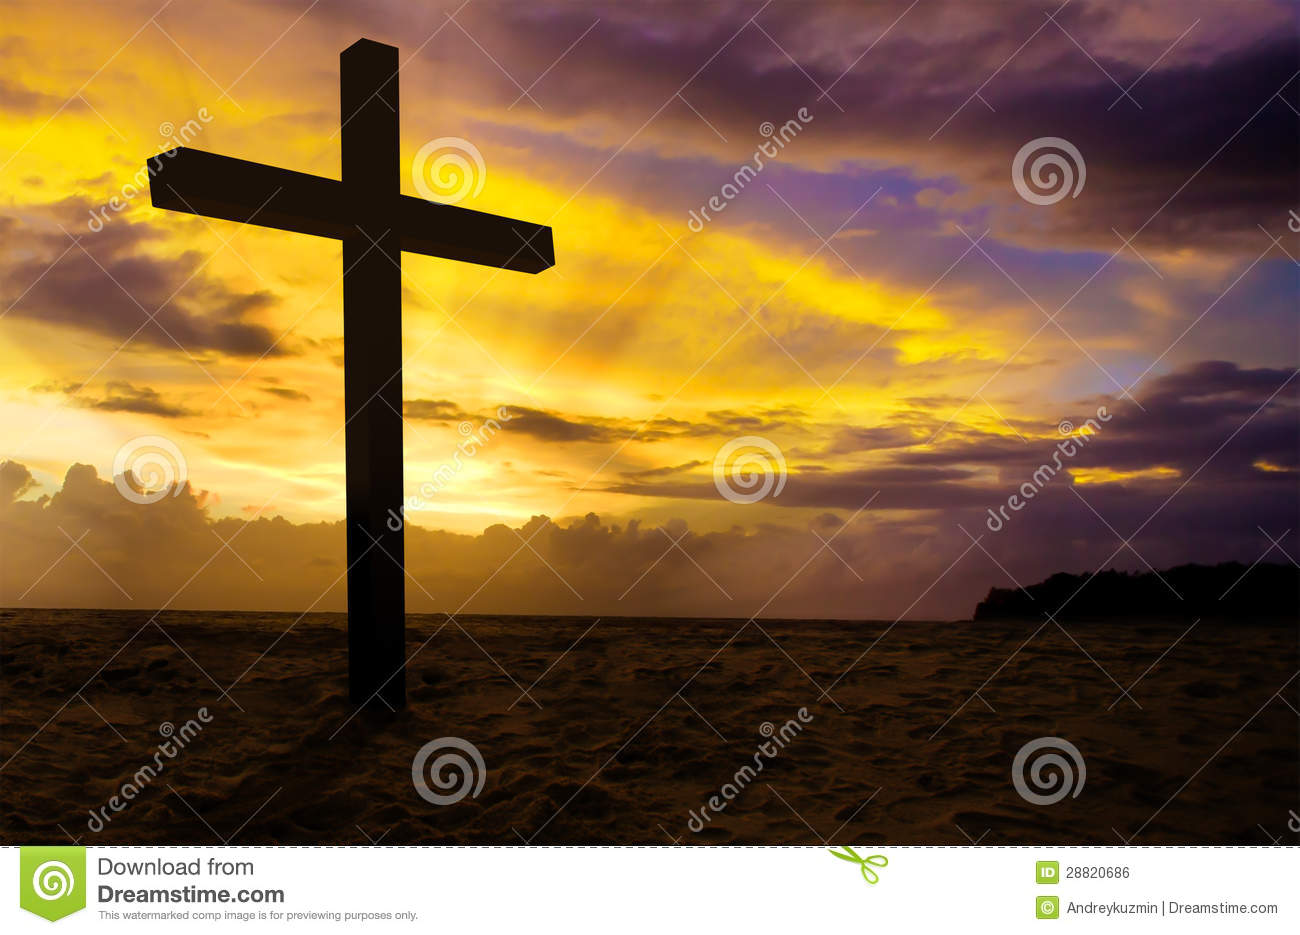 Christian Cross On Sunset Royalty Free Stock Image - Image: 28820686